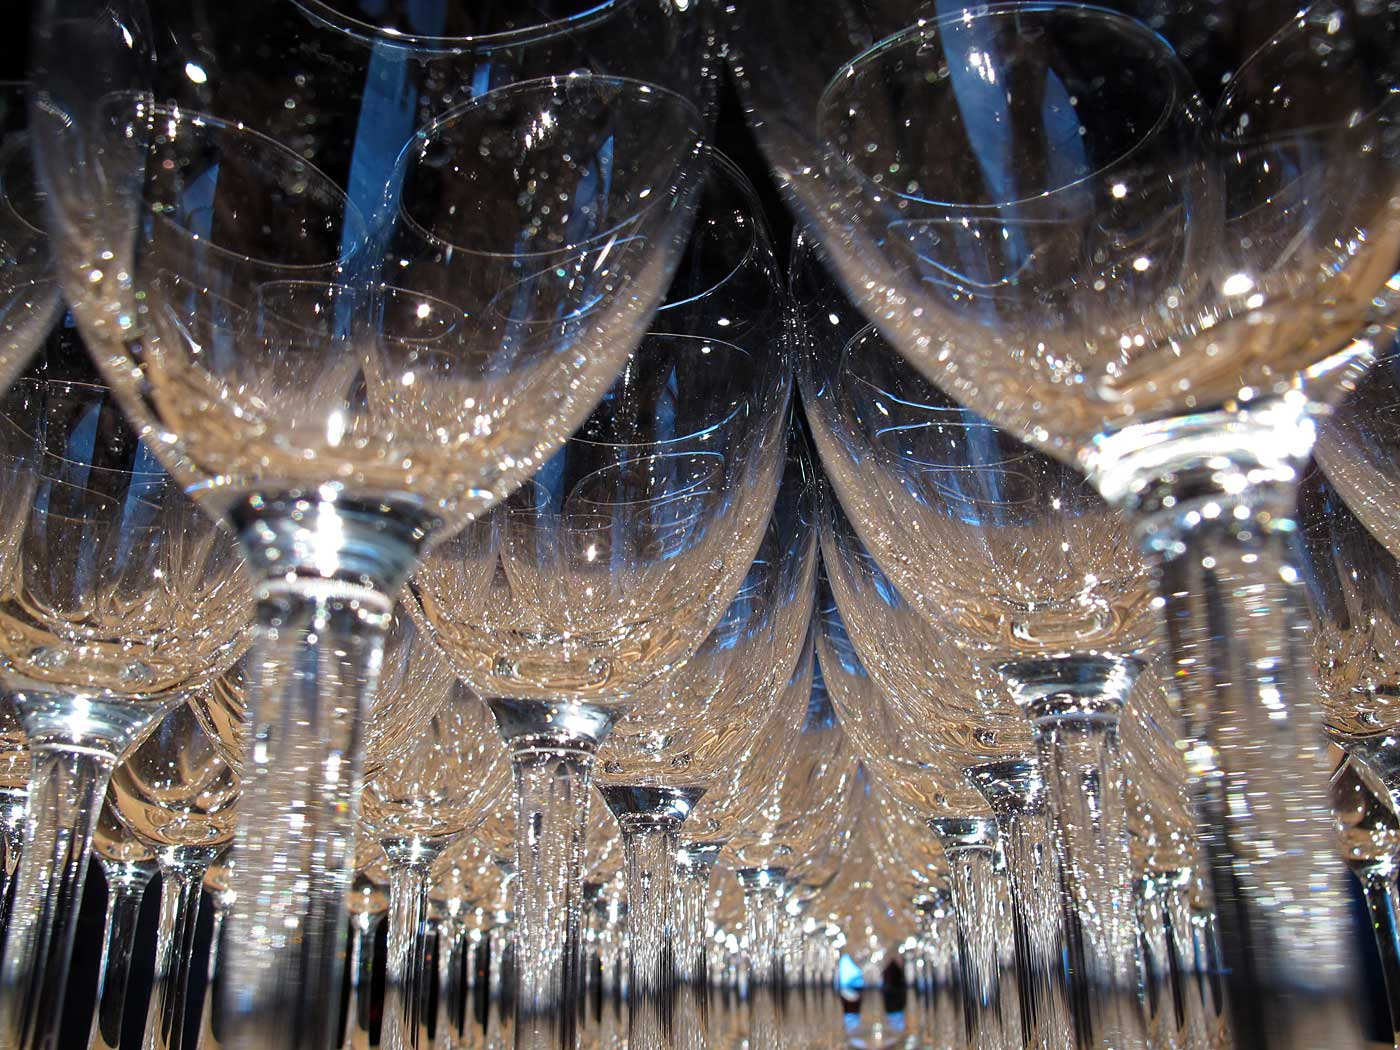 Reykjavík. Wine glasses during an opening event. - IV. (19 January 2013)